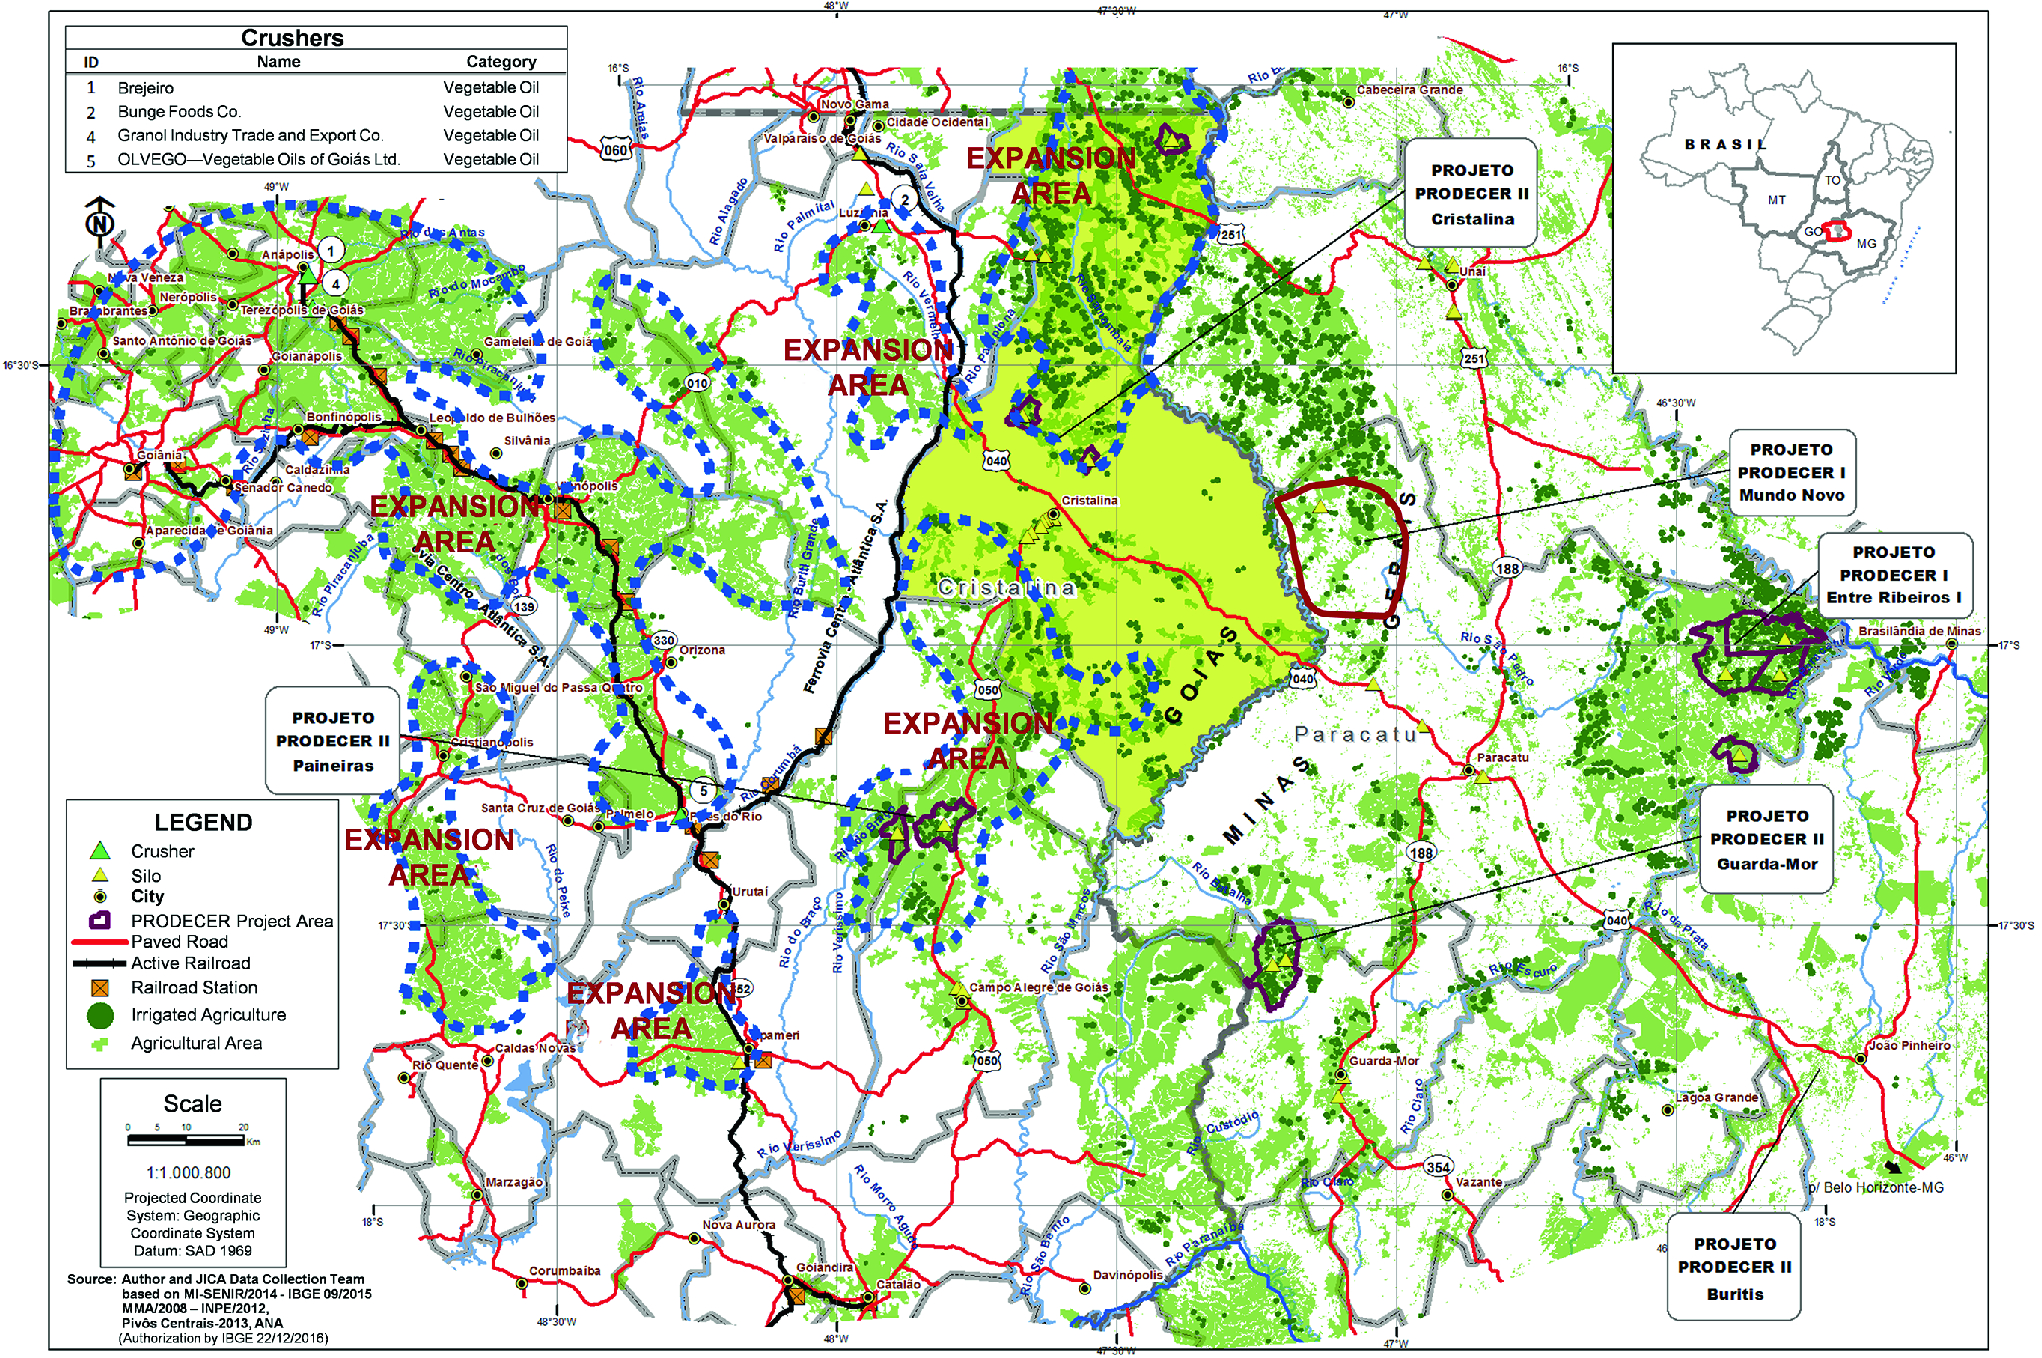 Economic and Social Impacts of Cerrado Agriculture